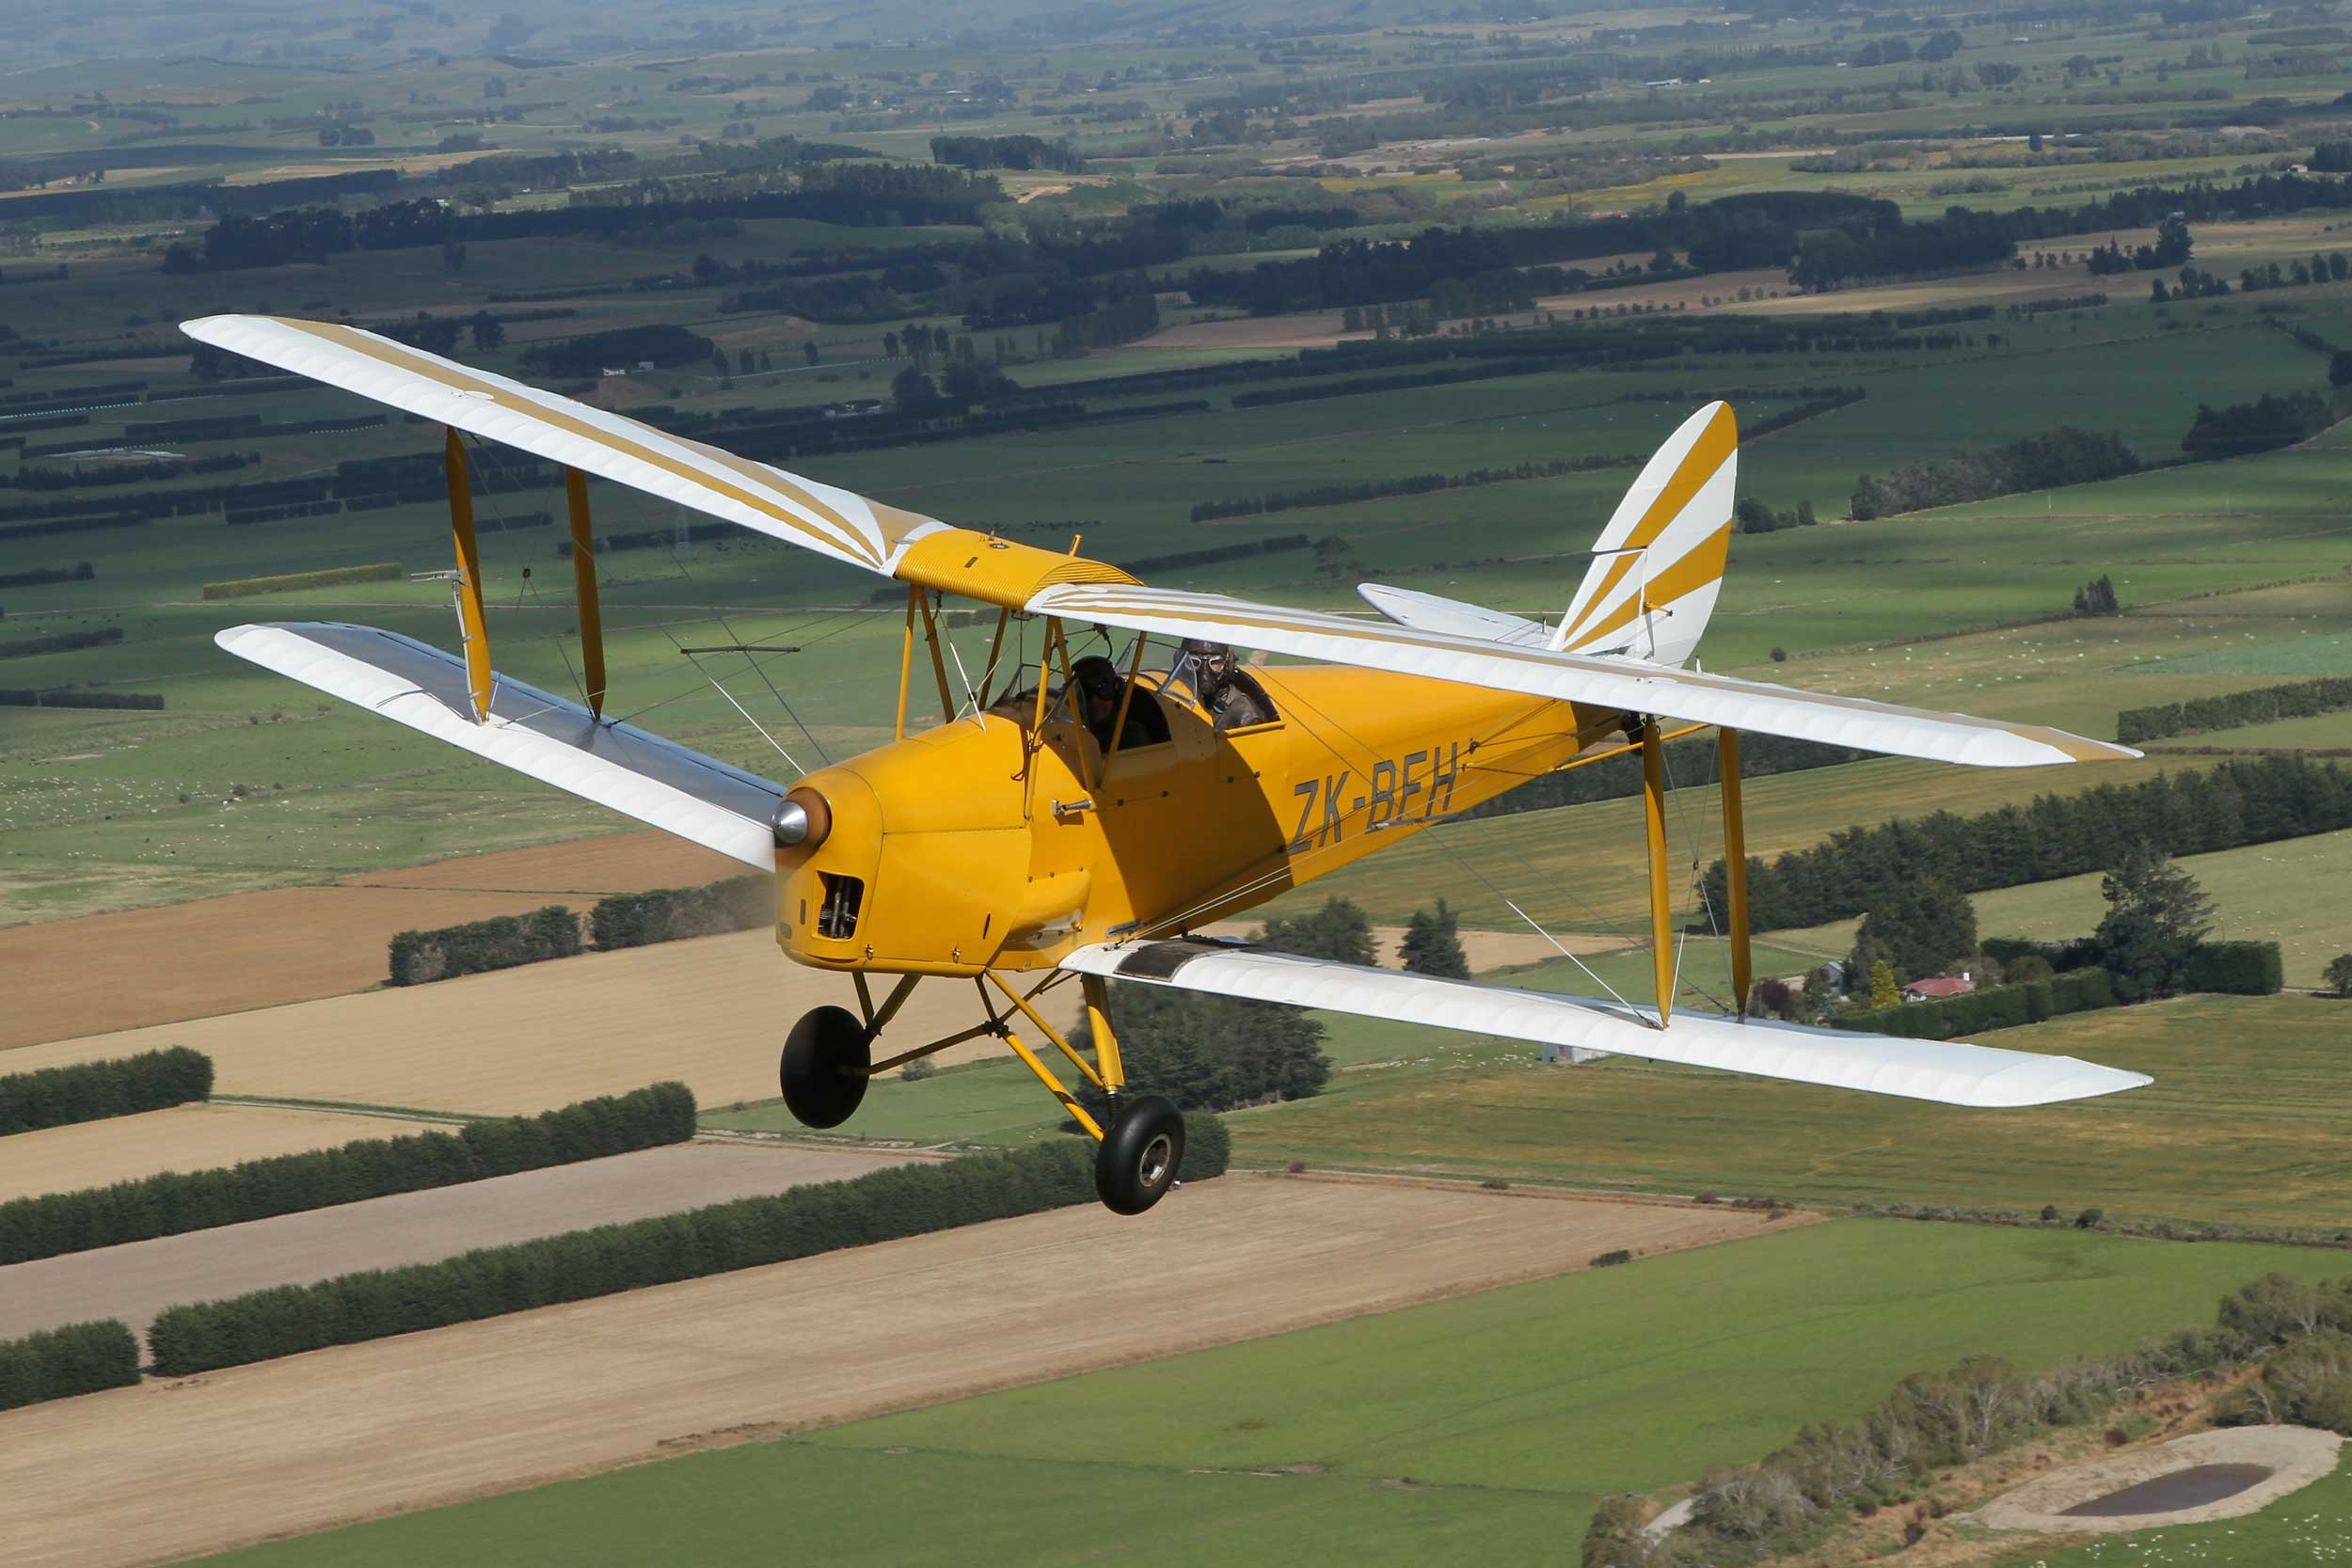 A yellow bi-plane in the air above farmland in New Zealand